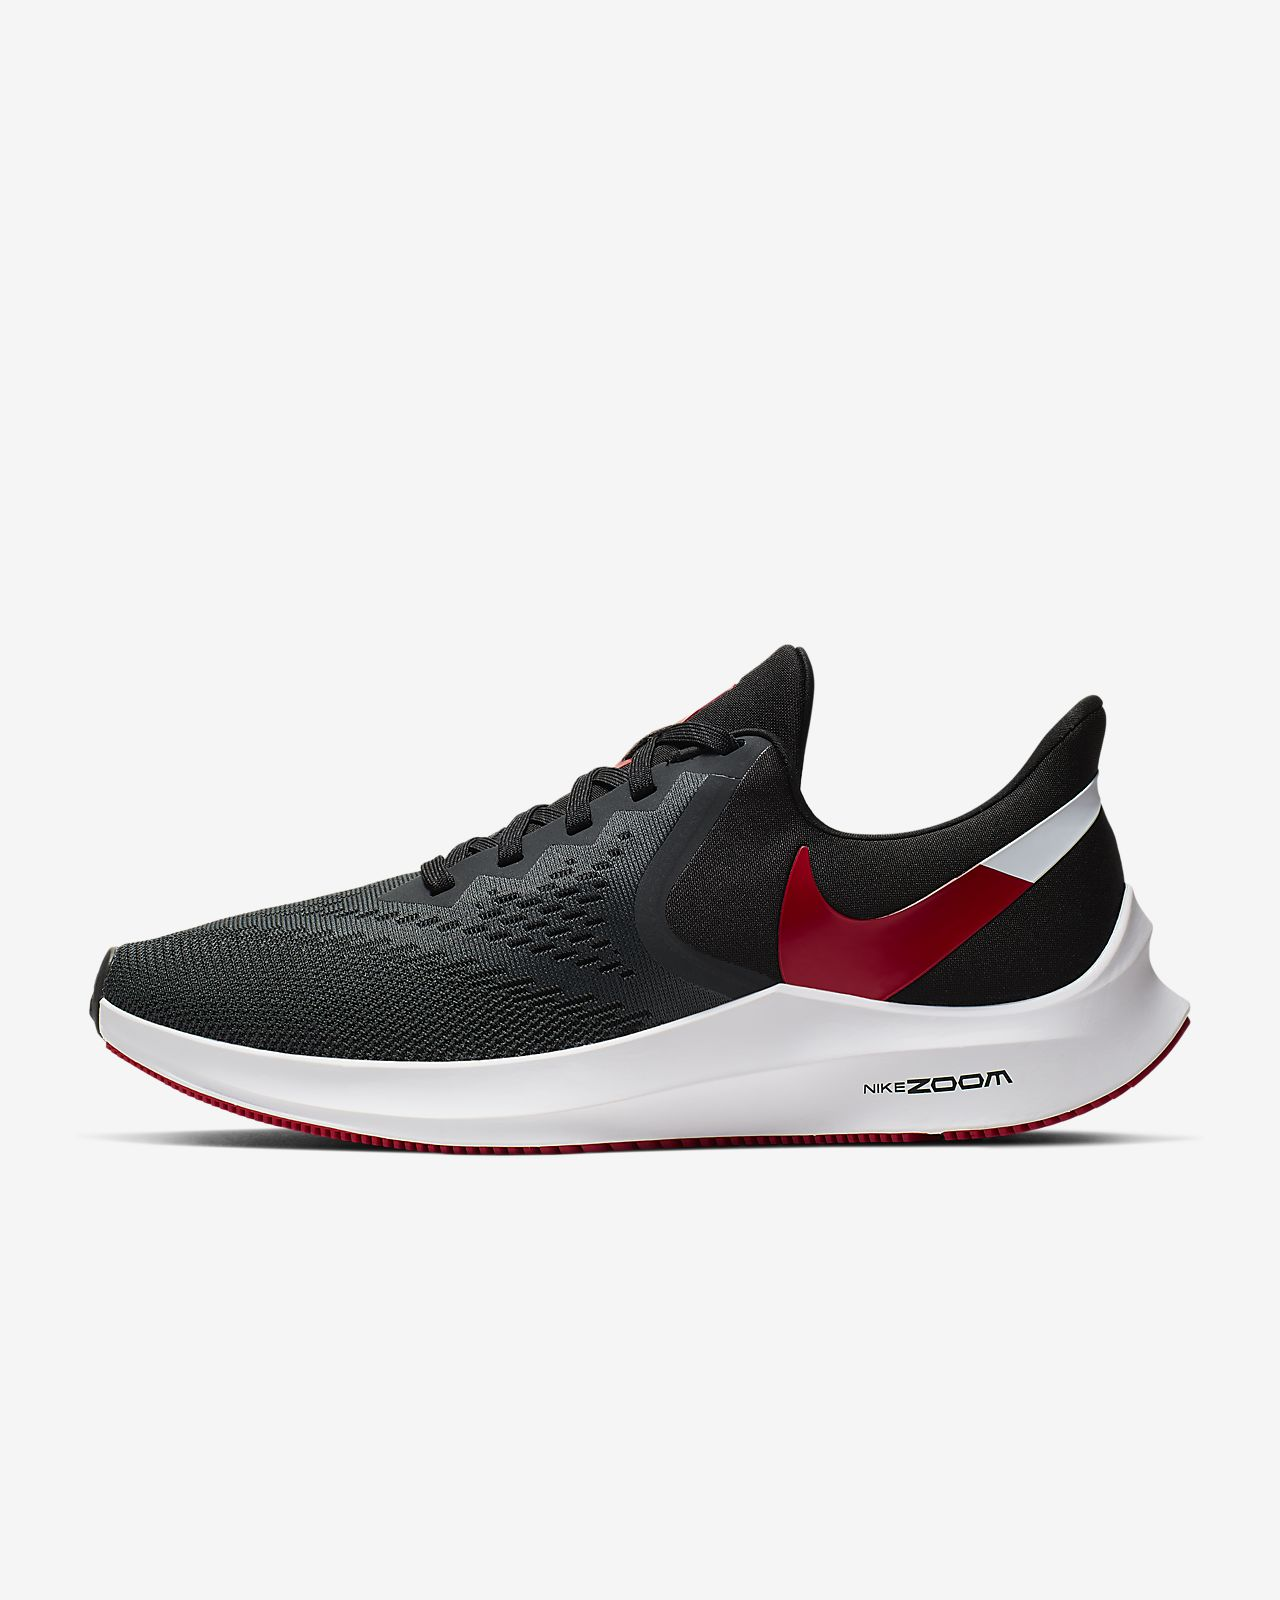 online store e8ea5 1fdd1 Nike Air Zoom Winflo 6 Men's Running Shoe